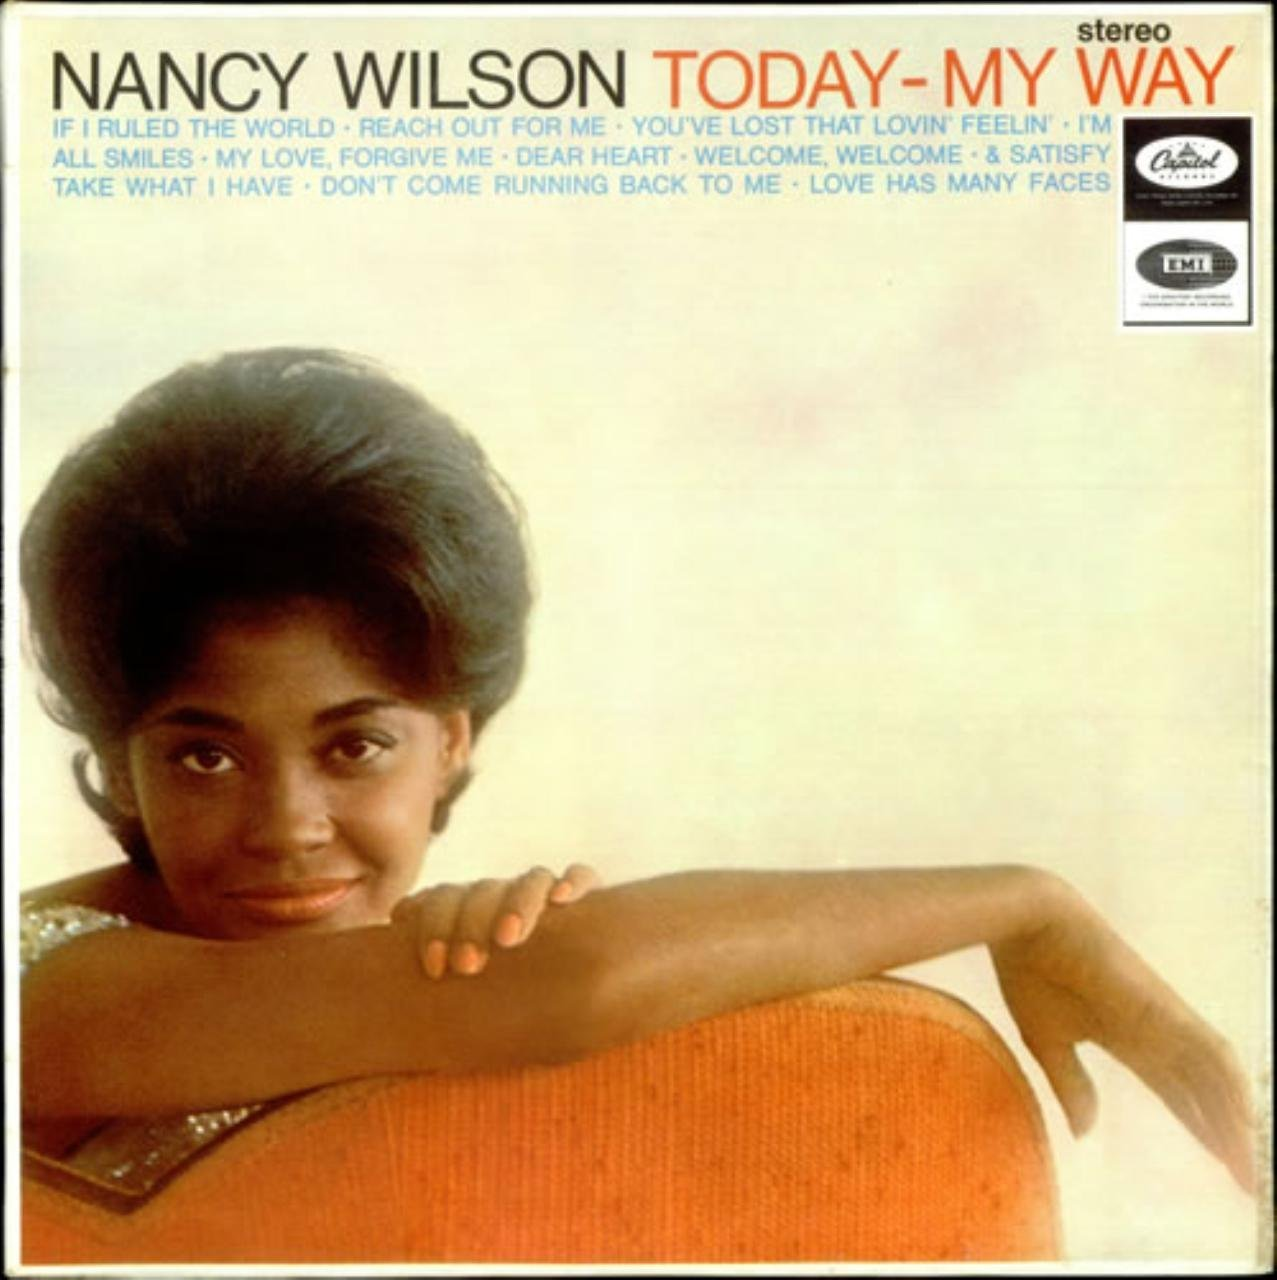 nancy wilson today my way.jpg